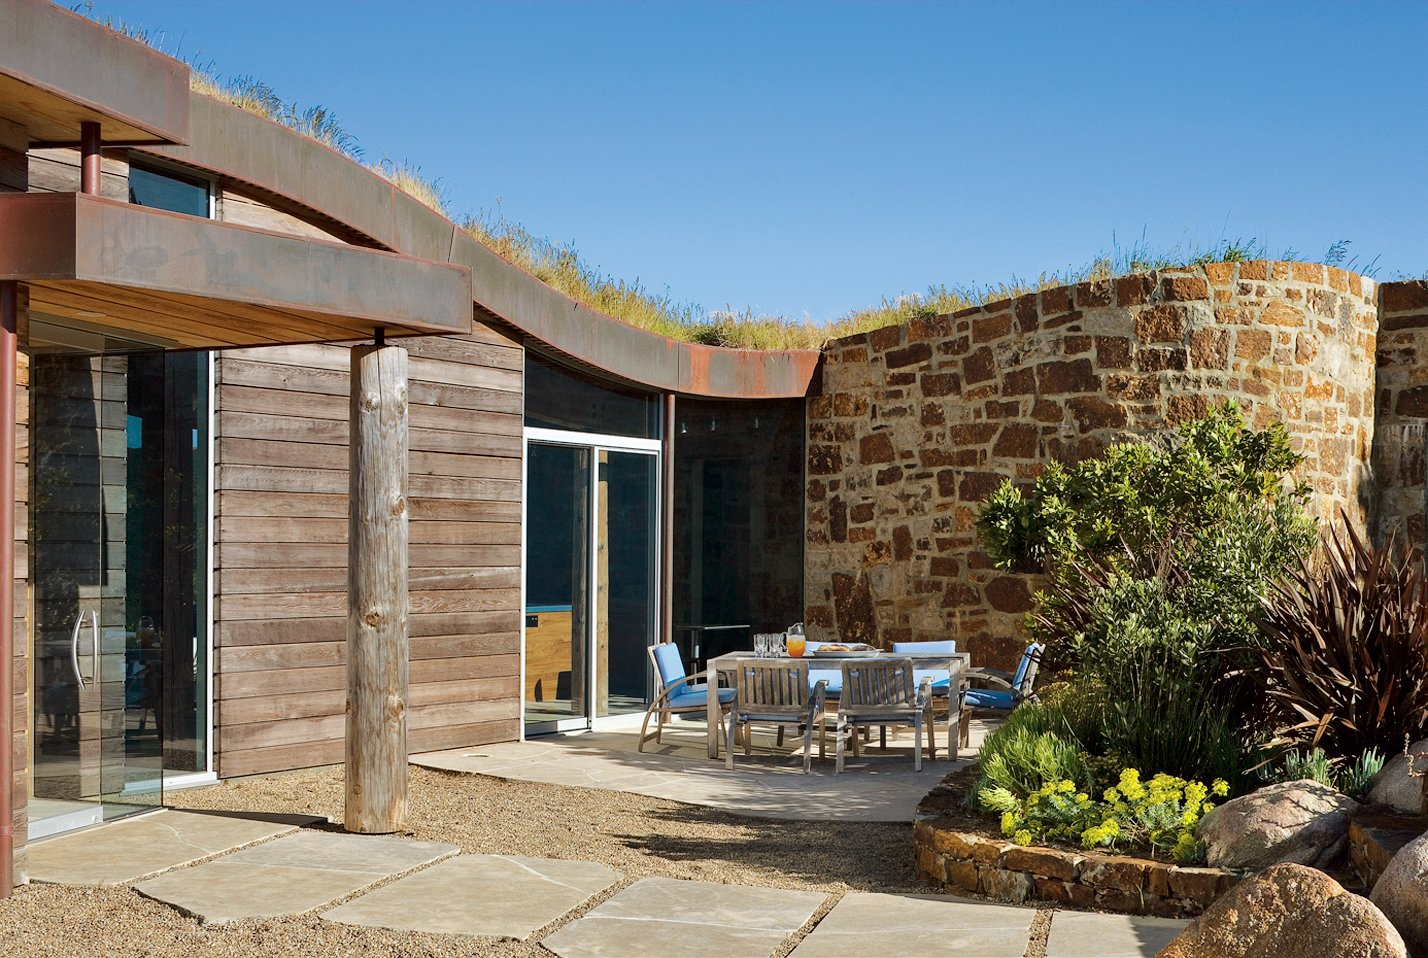 The structure sits lightly on a stone patio that cuts into the hillside site.